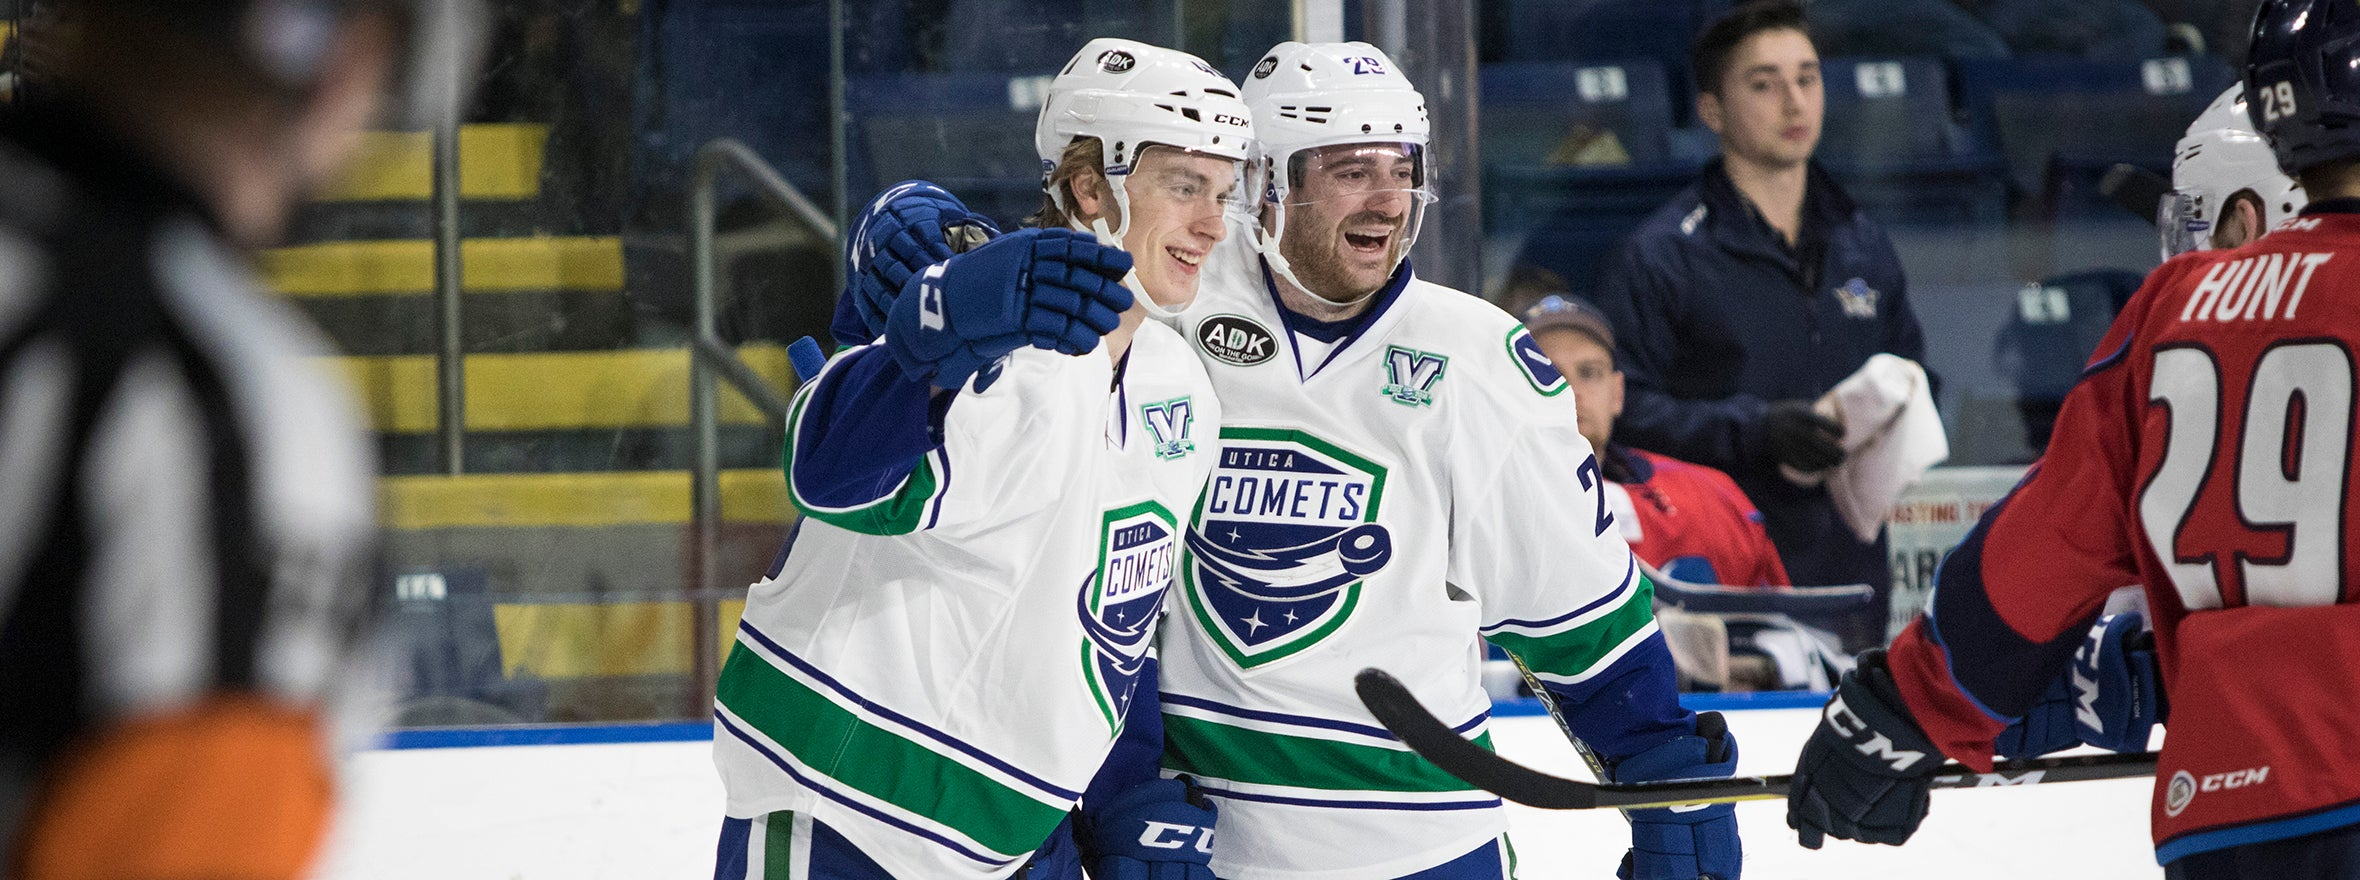 COMETS REIGN OVER THUNDERBIRDS IN A WILD AFFAIR